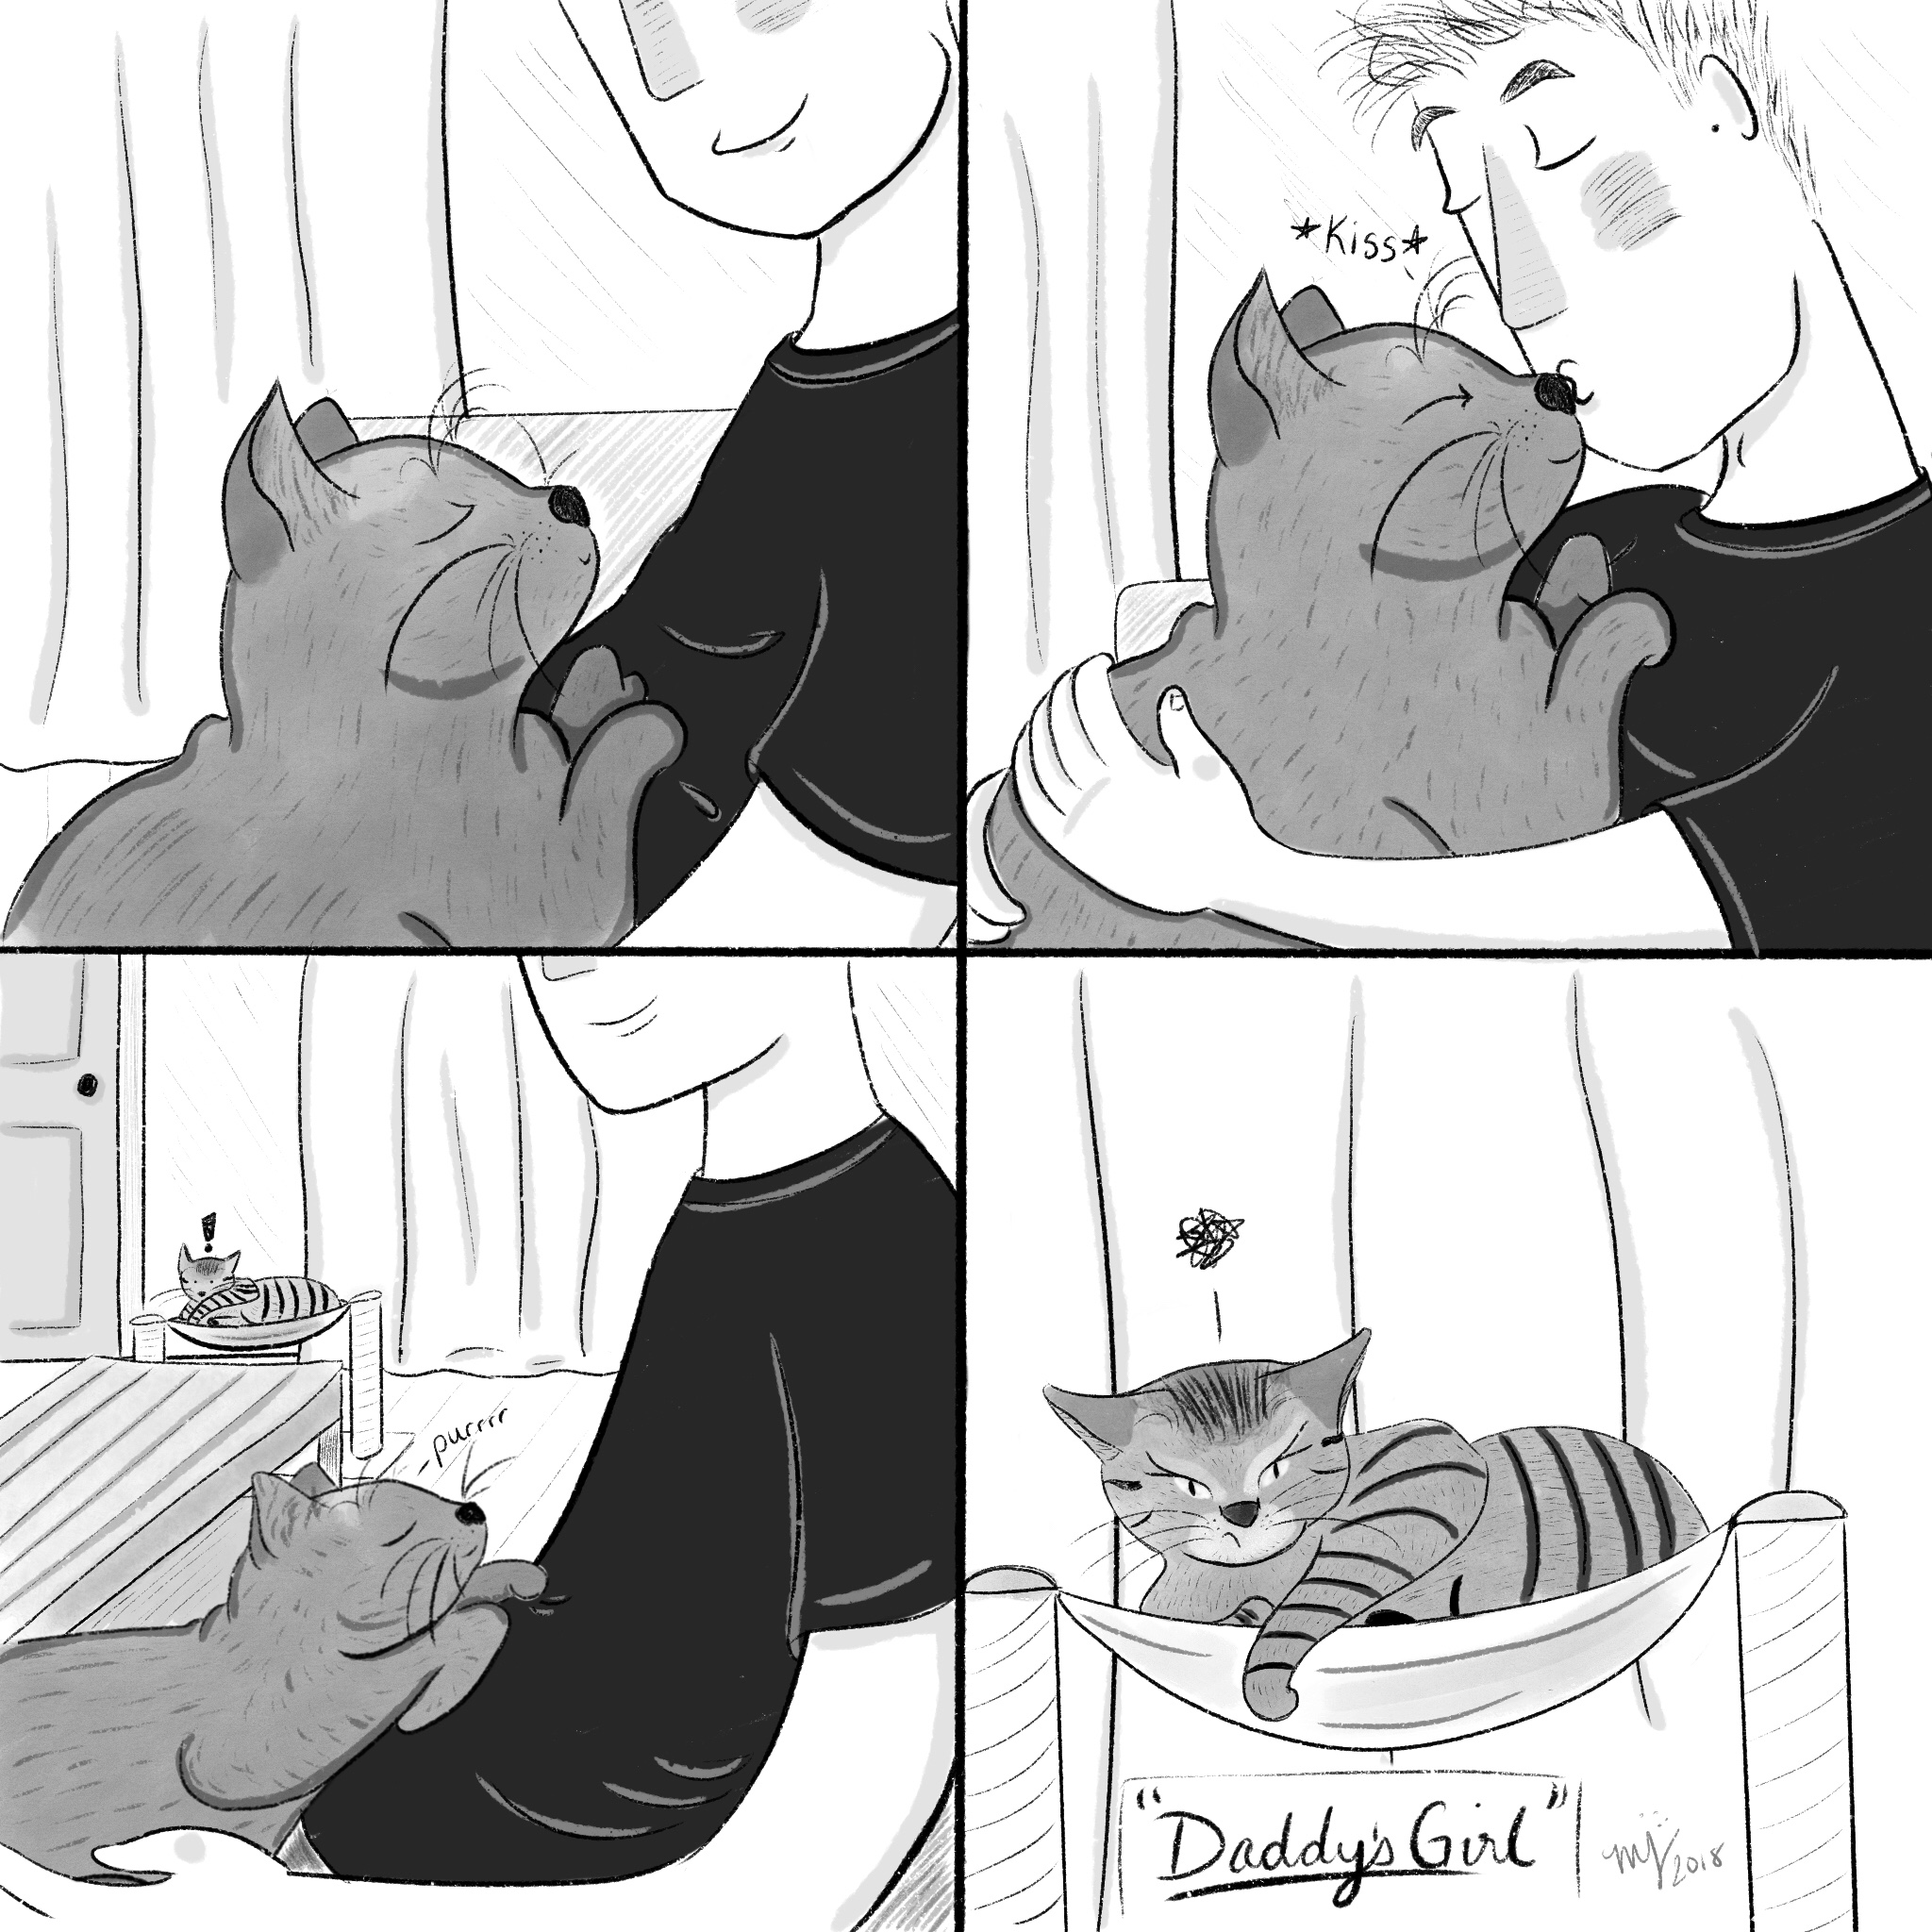 The other night Morgan was being super sweet with Data, when usually he's only that way with Picard. In the middle of this adorable display I looked over and saw Picard, who was NOT pleased. This was super hard to draw and I felt discouraged the whole time. Cats are hard to draw. Profiles are hard to draw. Rooms at an angle are hard to draw 😱😱